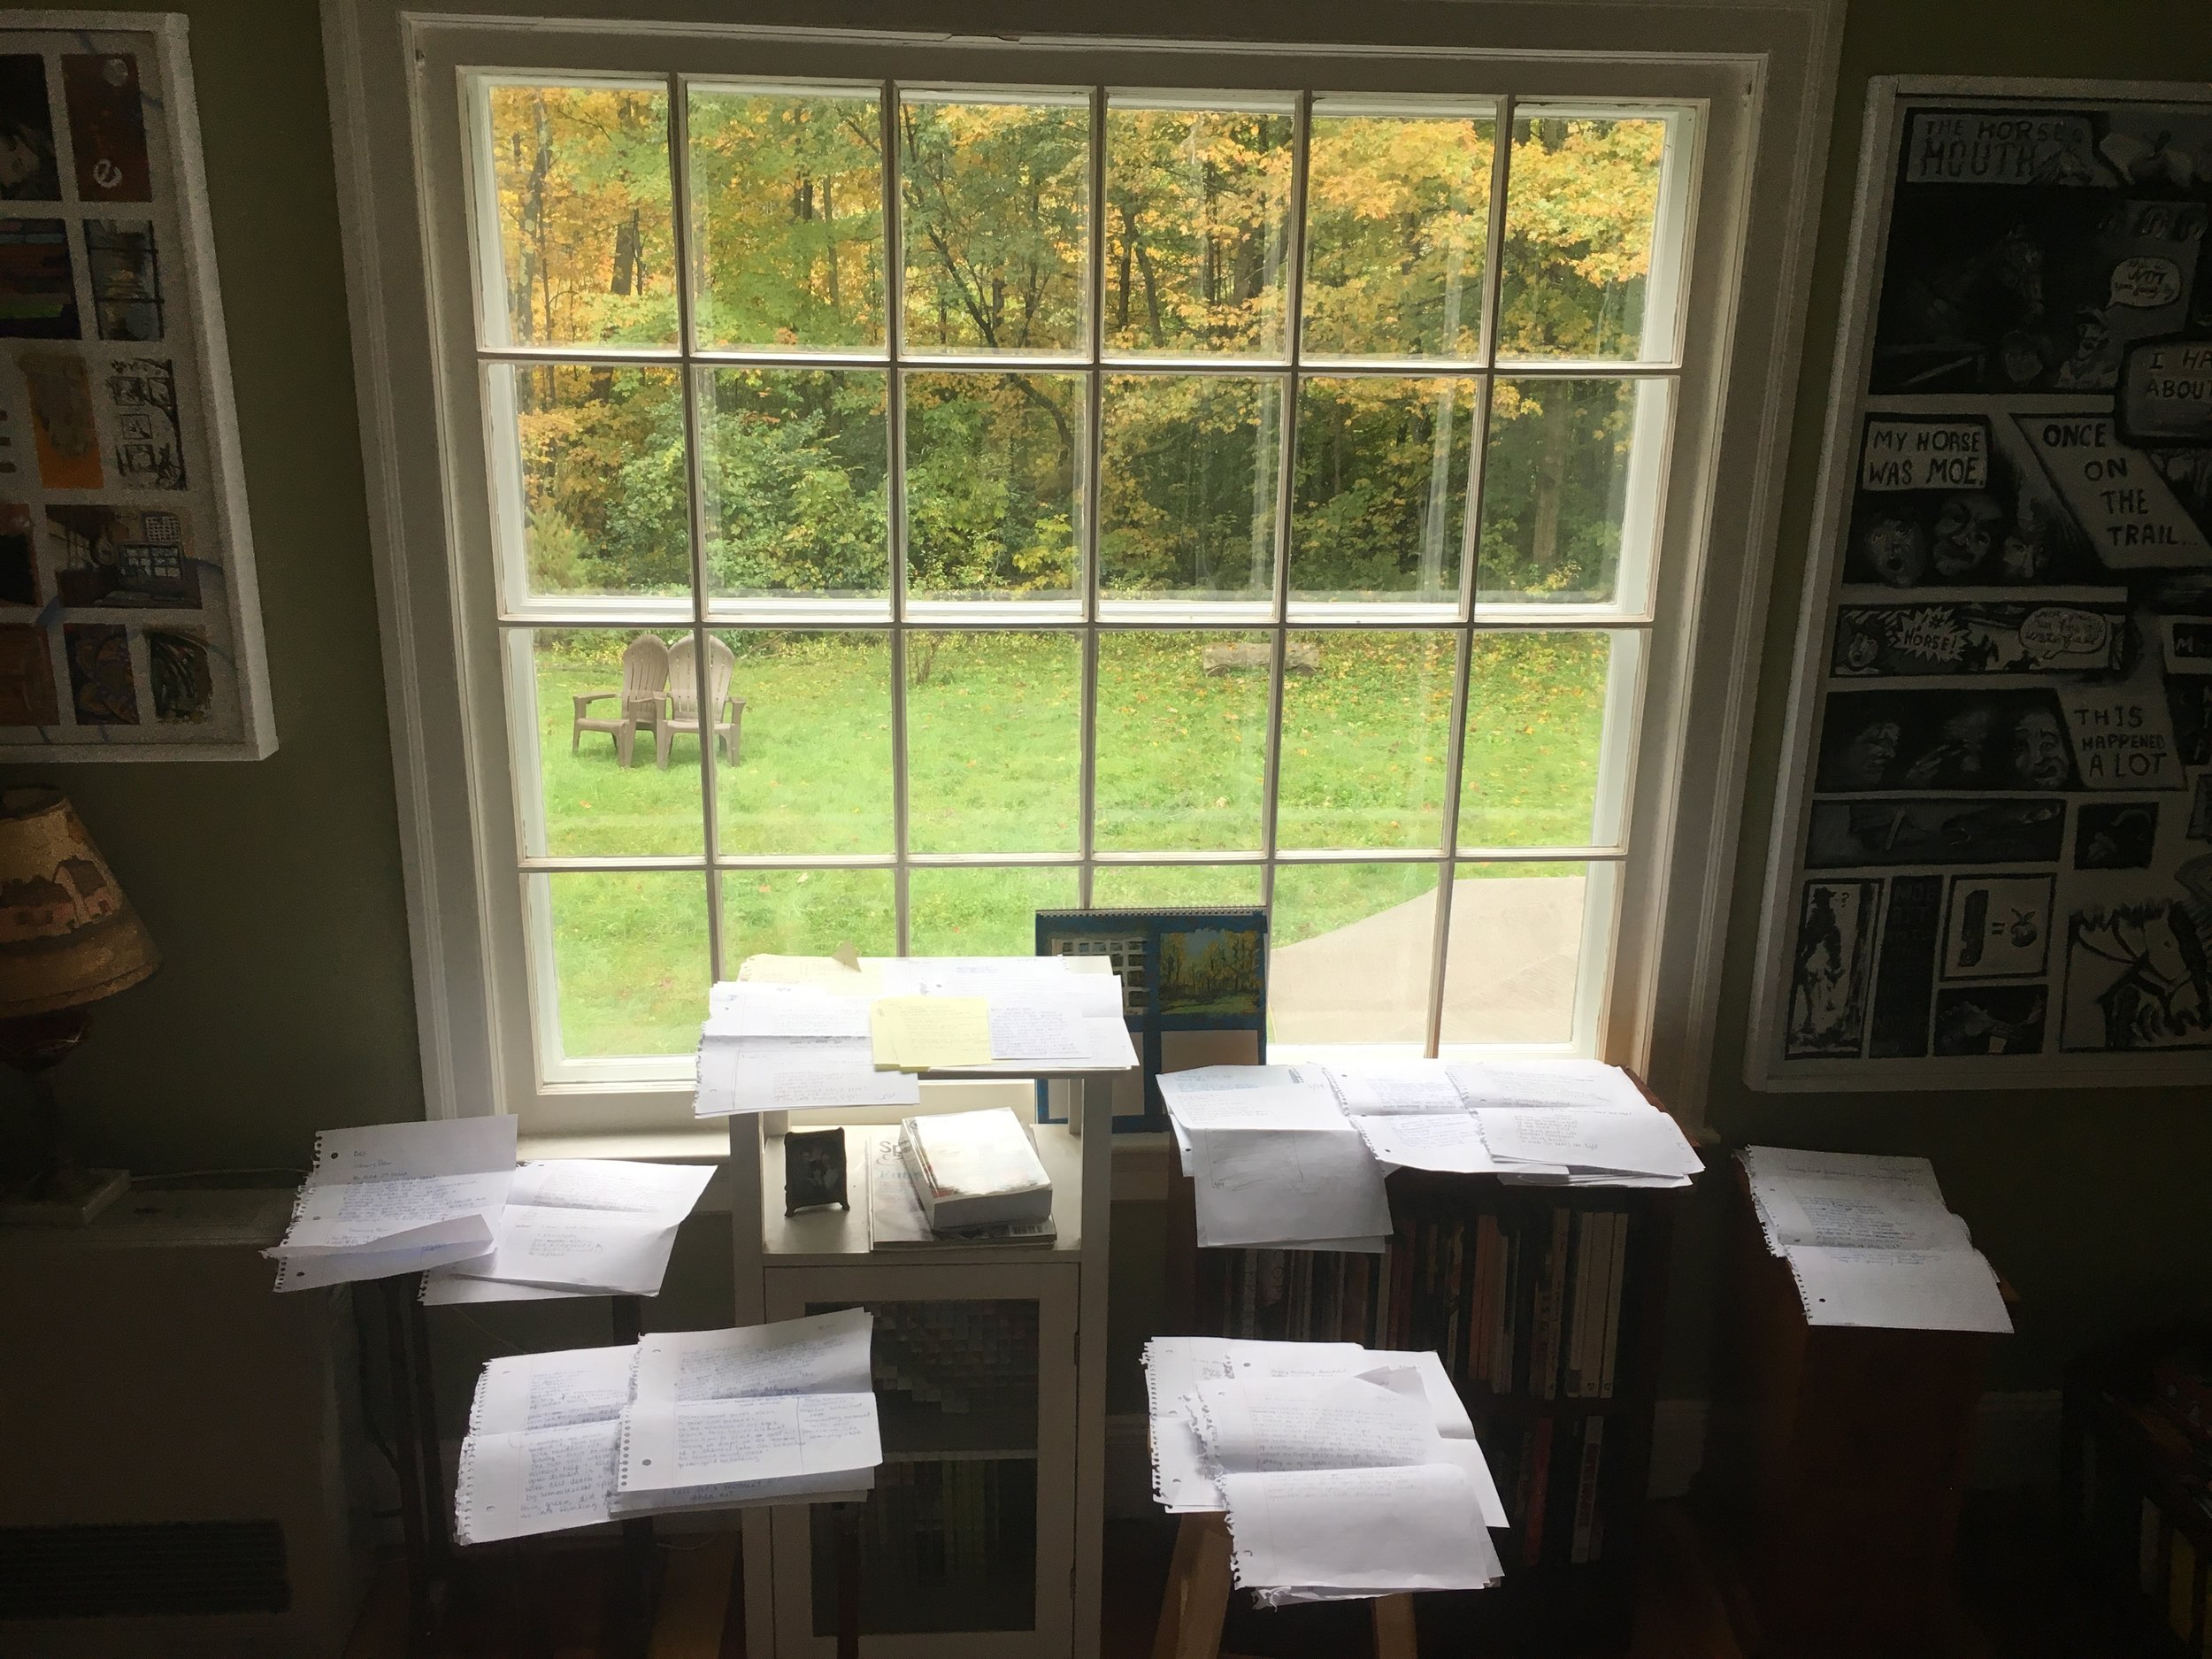 michael chaney and sara chaney month of sundays poems with window.jpg